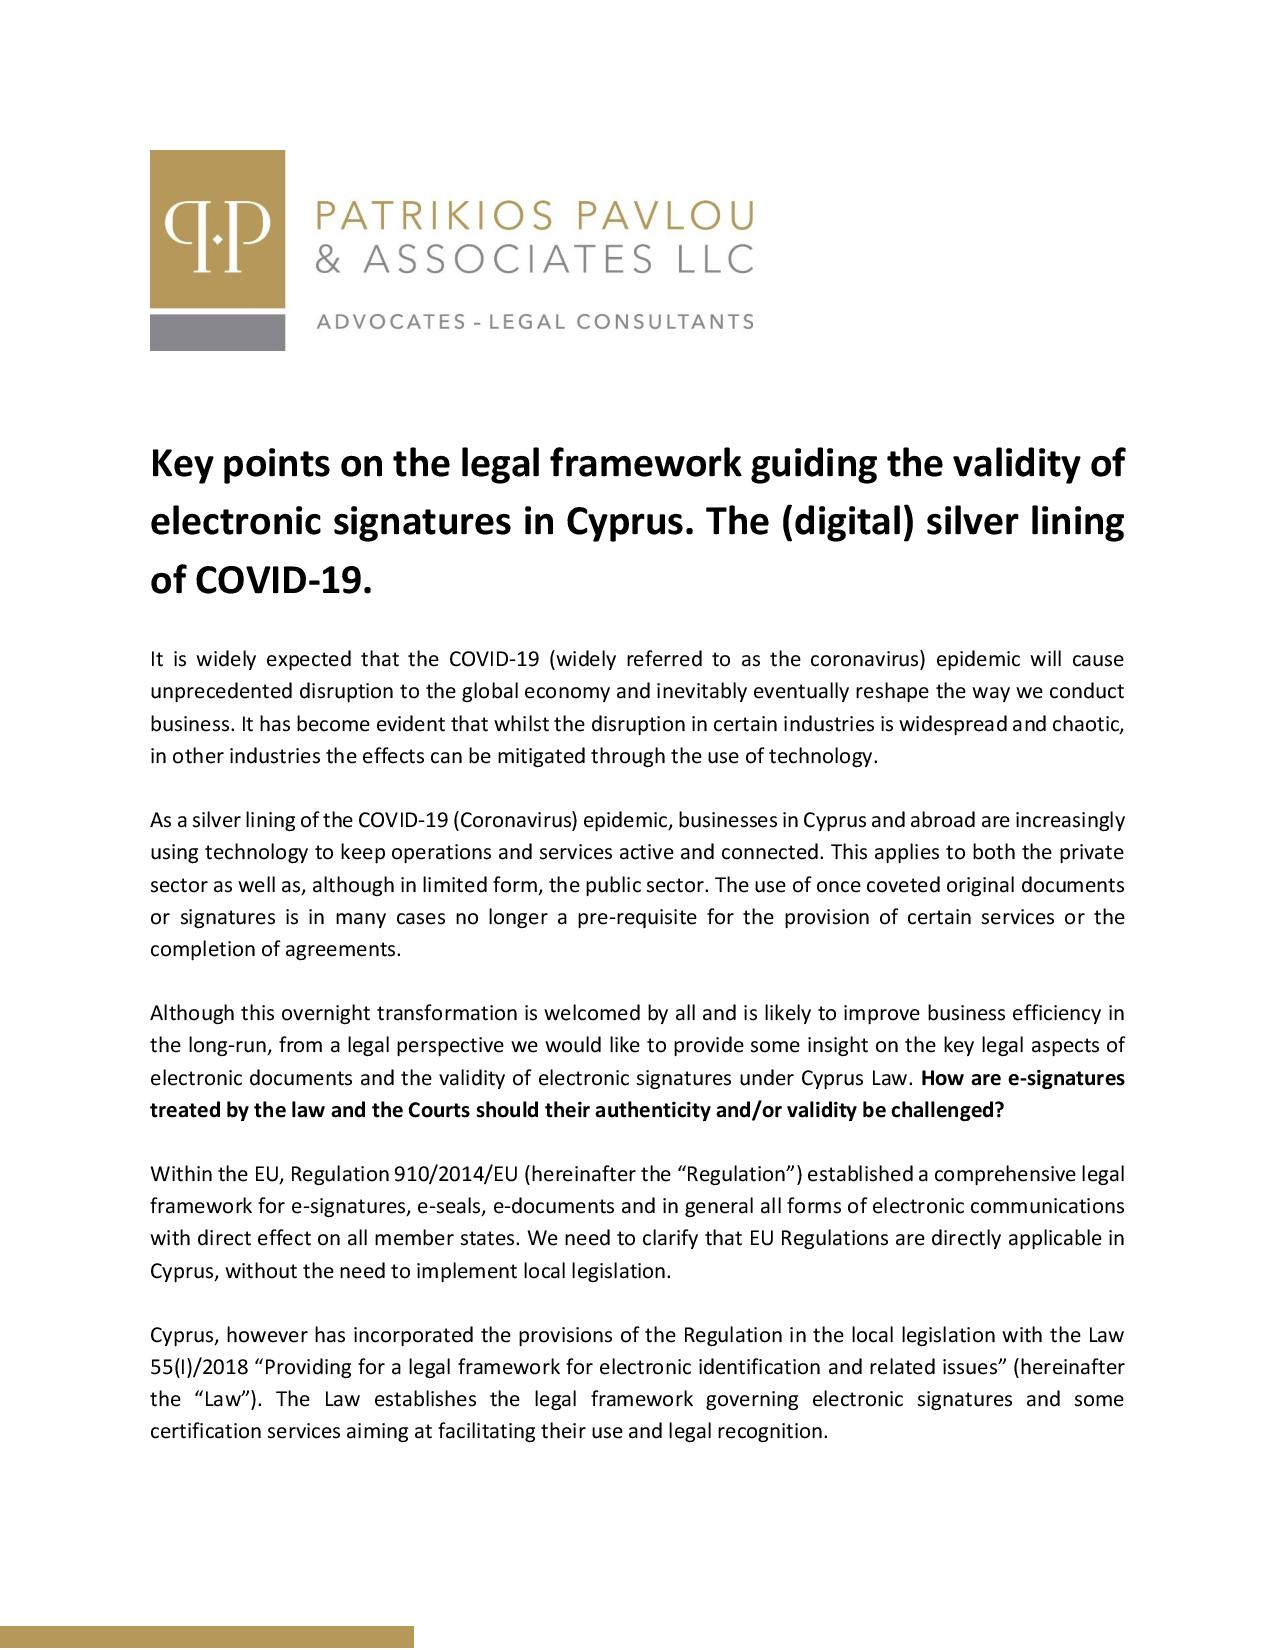 Key points on the legal framework guiding the validity of electronic signatures in Cyprus. The (digital) silver lining of COVID-19.